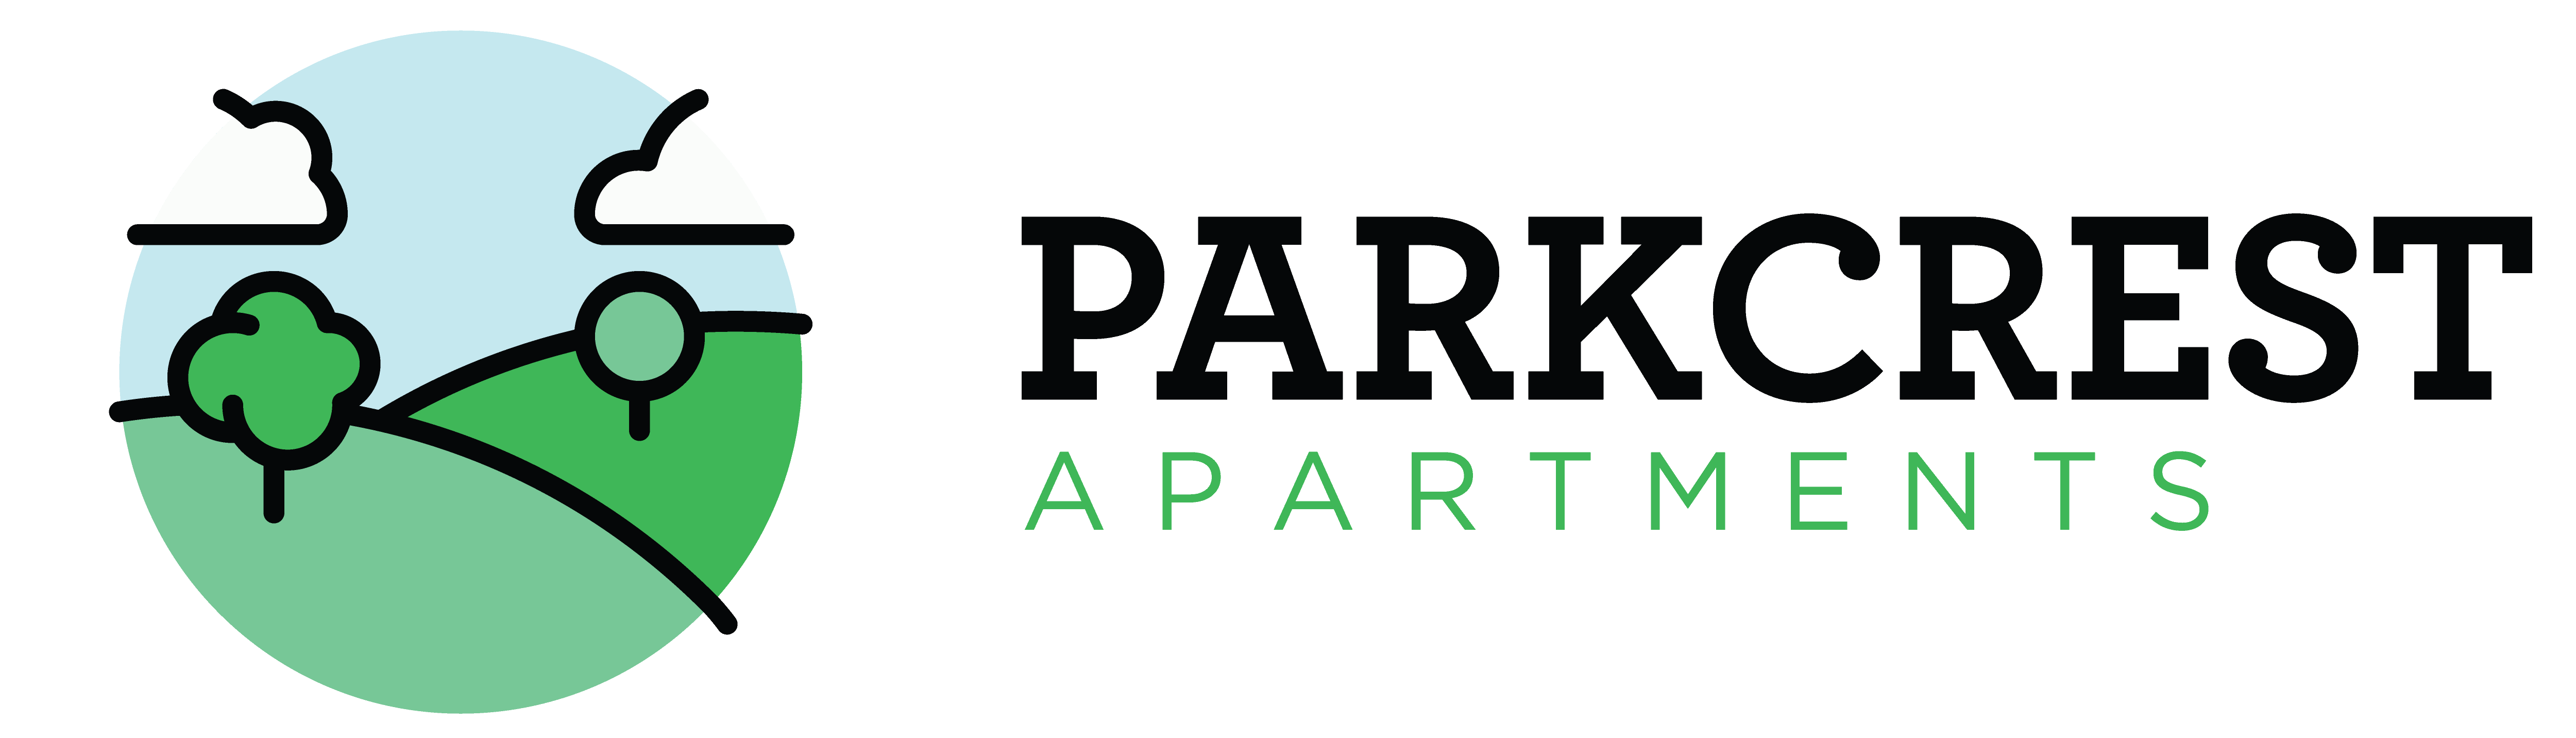 Parkcrest Apartments